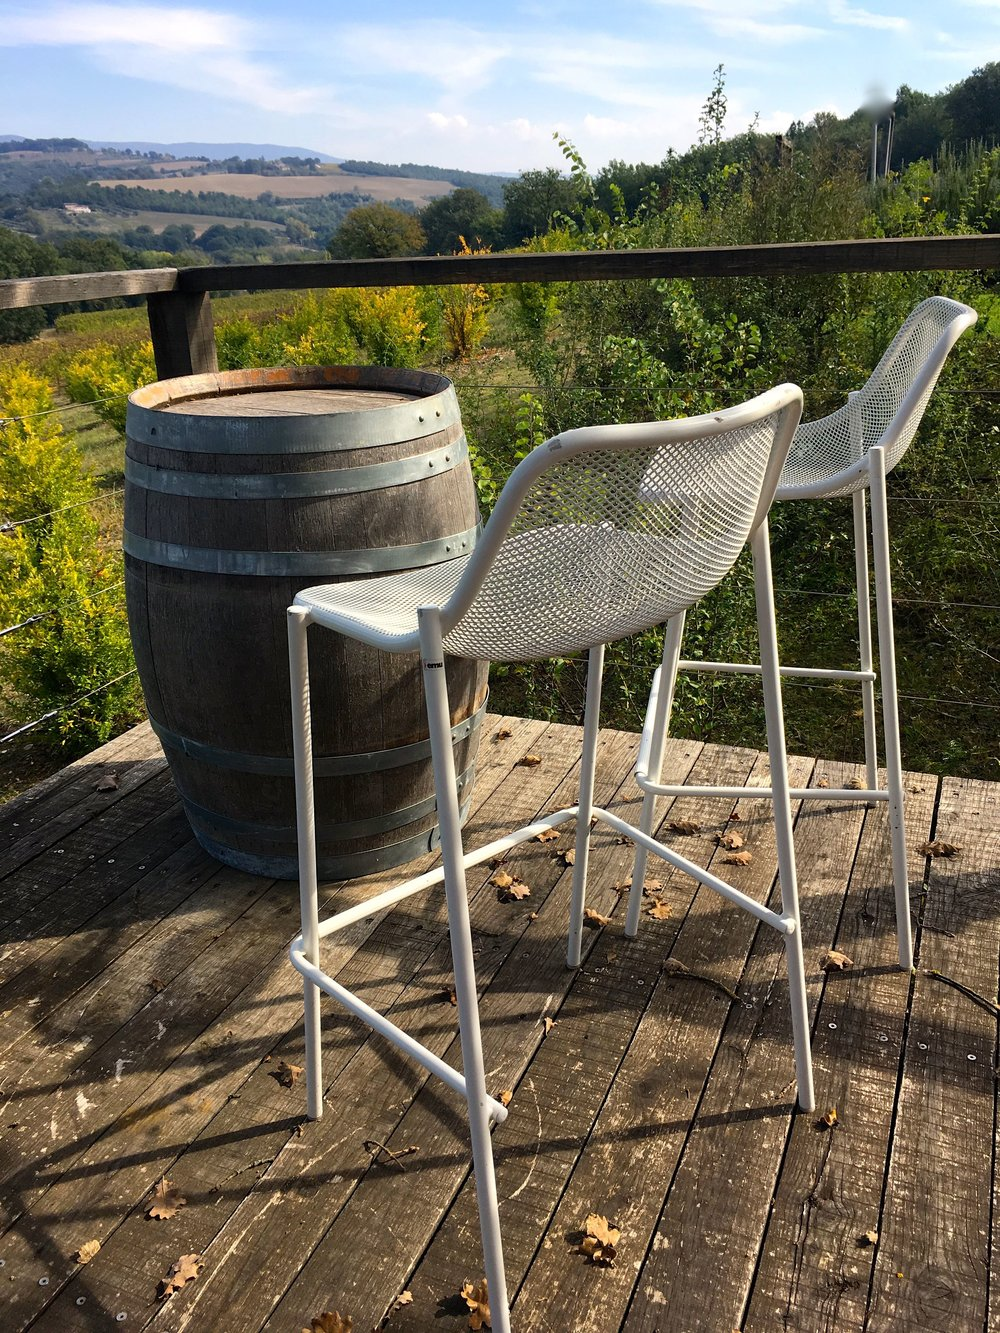 A place to perch and enjoy the Italian Countryside